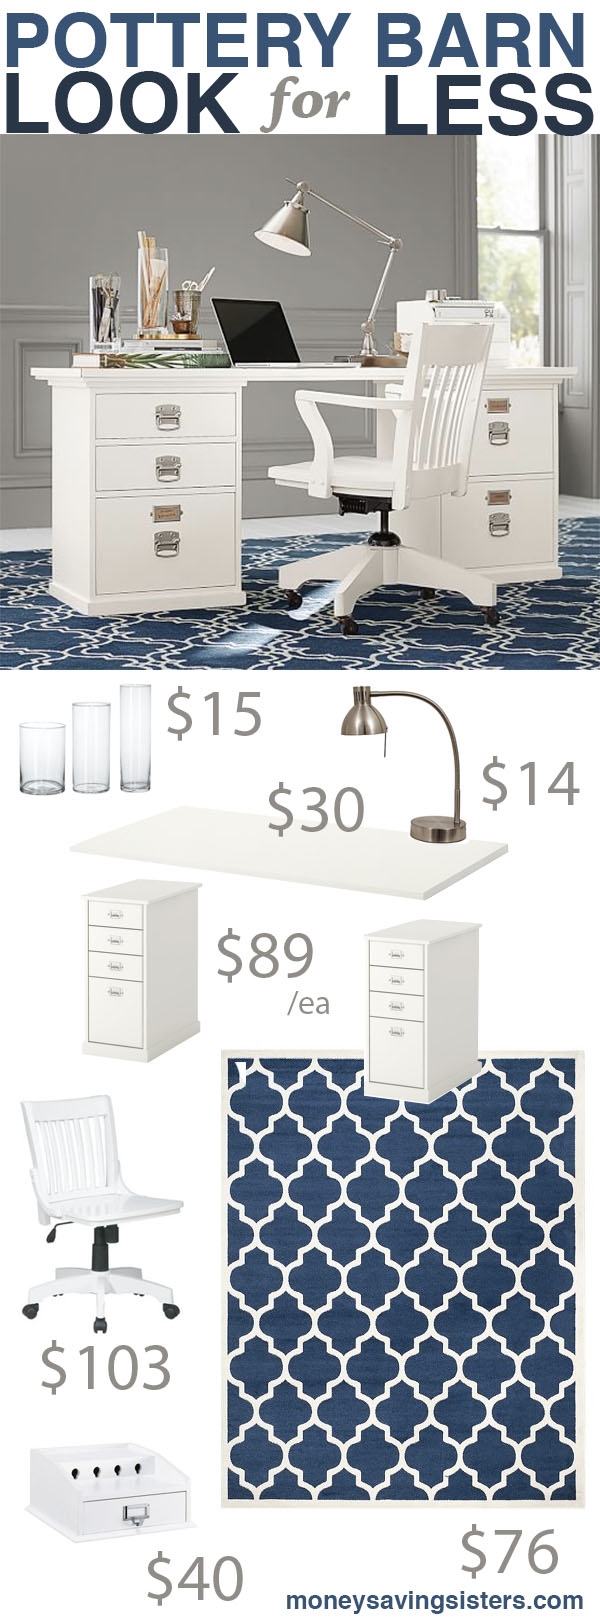 Pottery barn bedford rectangular office desk knockoff money saving sisters - Pottery barn office desk ...